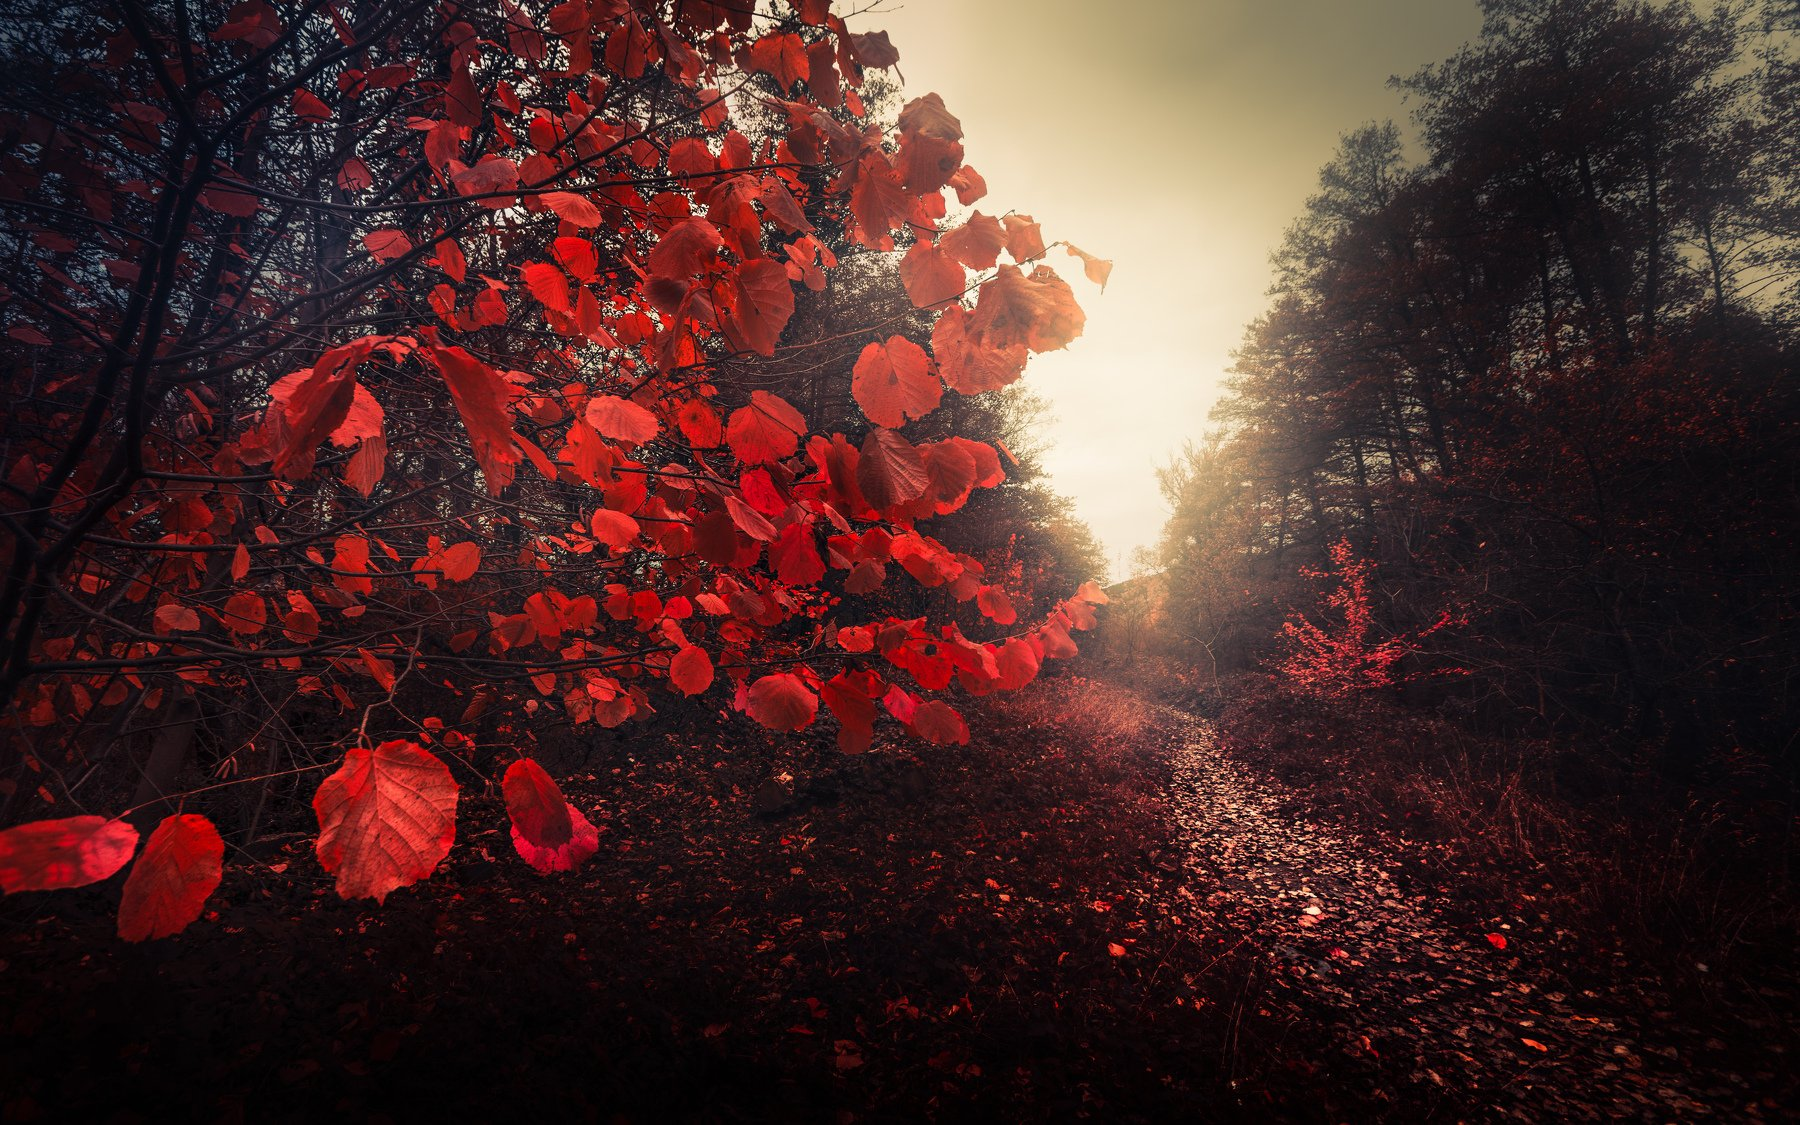 autumn, fall, landscape, trees, forest, woods, bulgaria, colors, nature, fog, mist, rain, october, red, leaves, fairytale, Кристиян Младенов